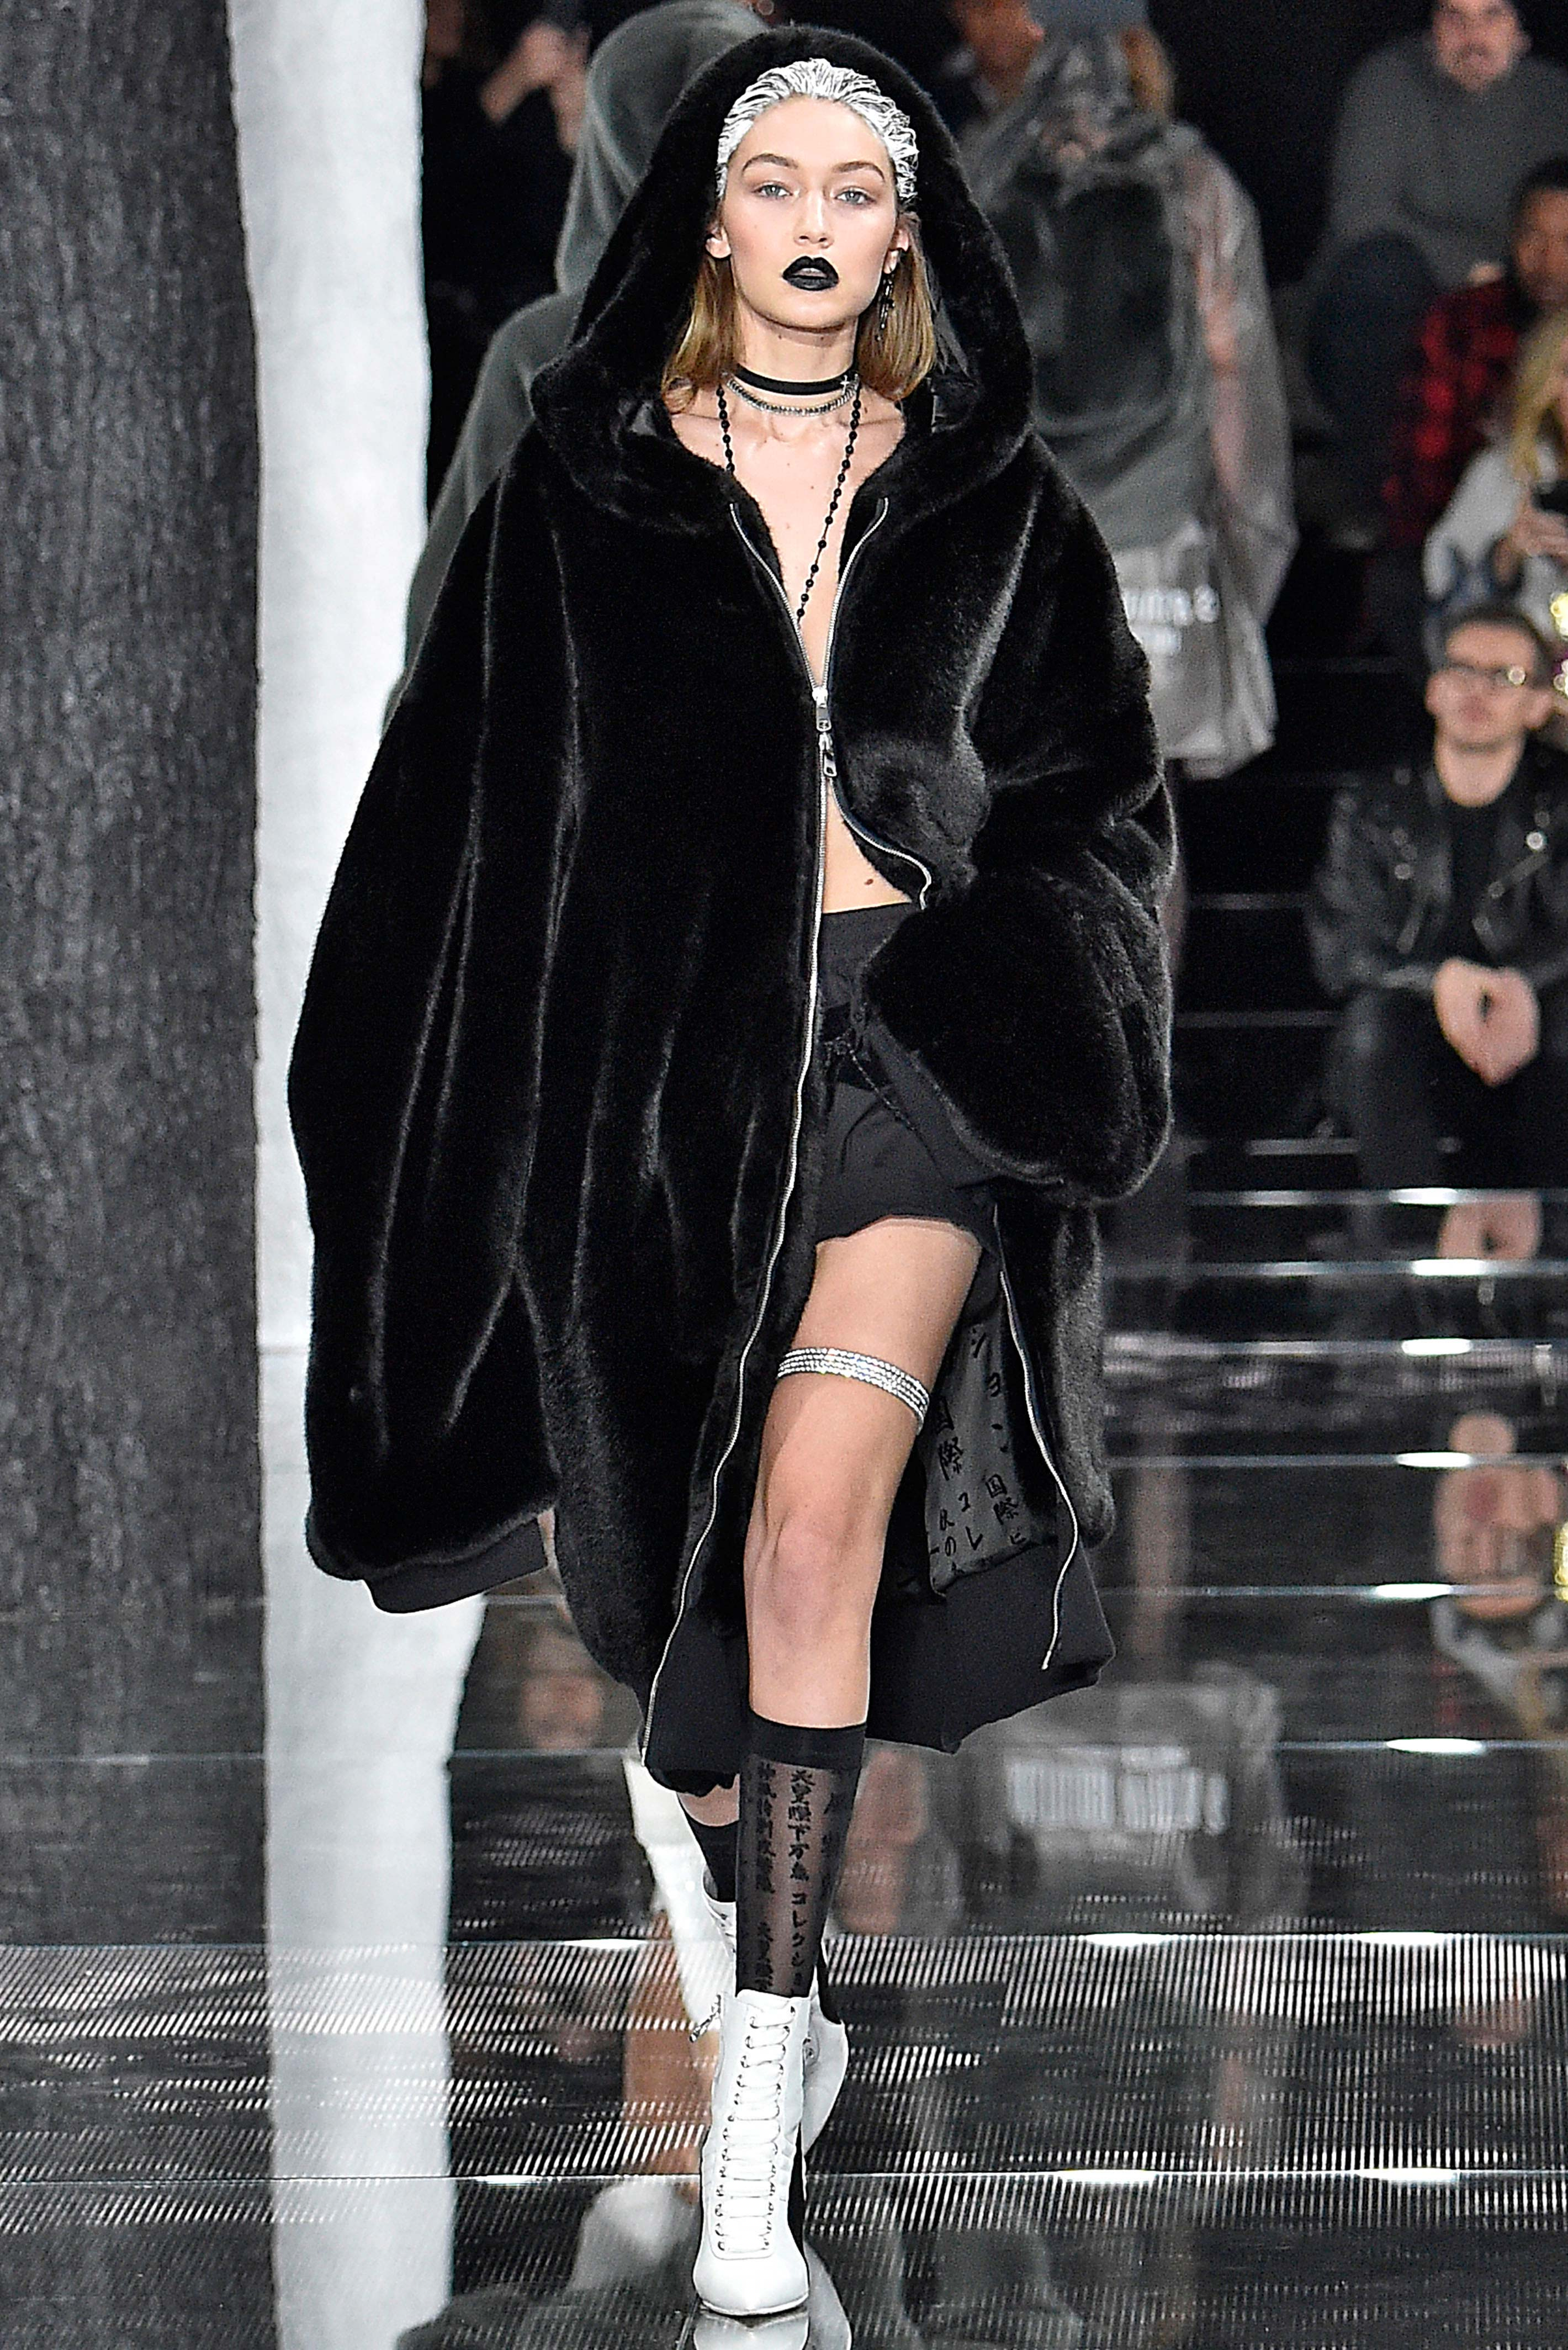 Once the preserve of mischief-making hoodlums everywhere, the hood has experienced a decidedly haute reanimation in the world of high fashion. It made an appearance at Vetements, often with high, sculpted shoulders; at Riri's Fenty x Puma show in the form of plush, furry coats and on the runway at Public School and Rag & Bone.